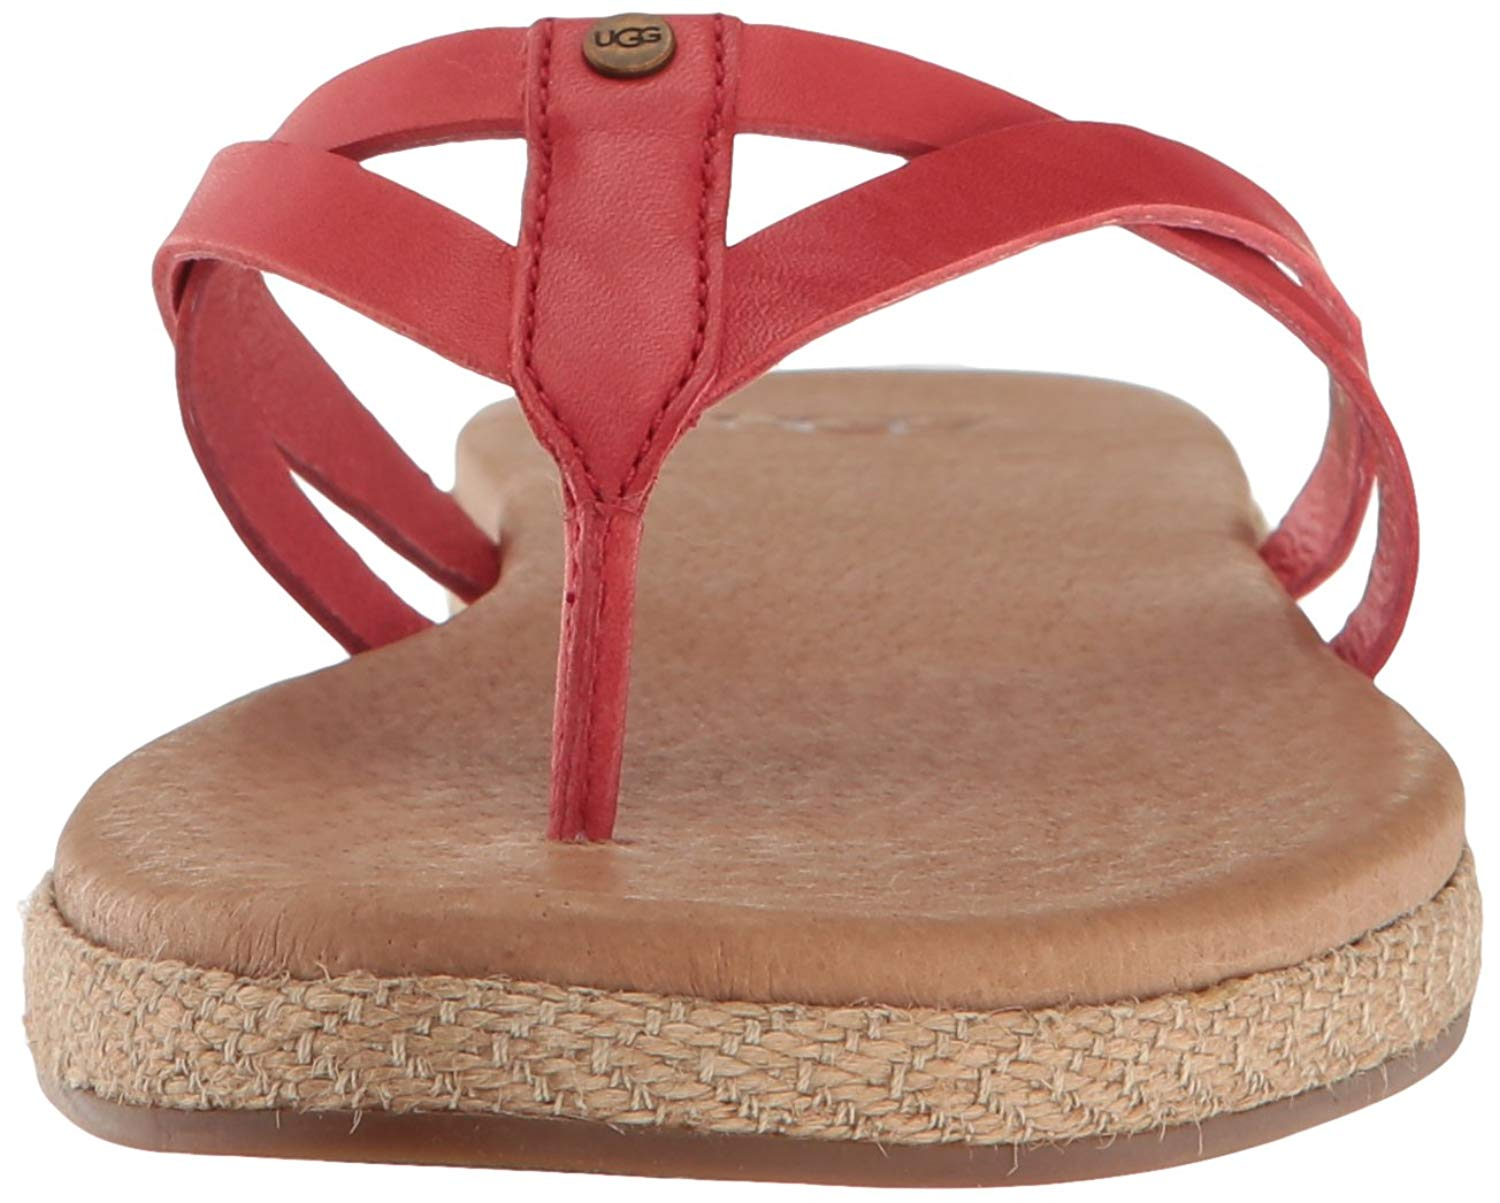 dd300c8a580 Details about Ugg Australia Womens Annice Leather Open Toe Beach